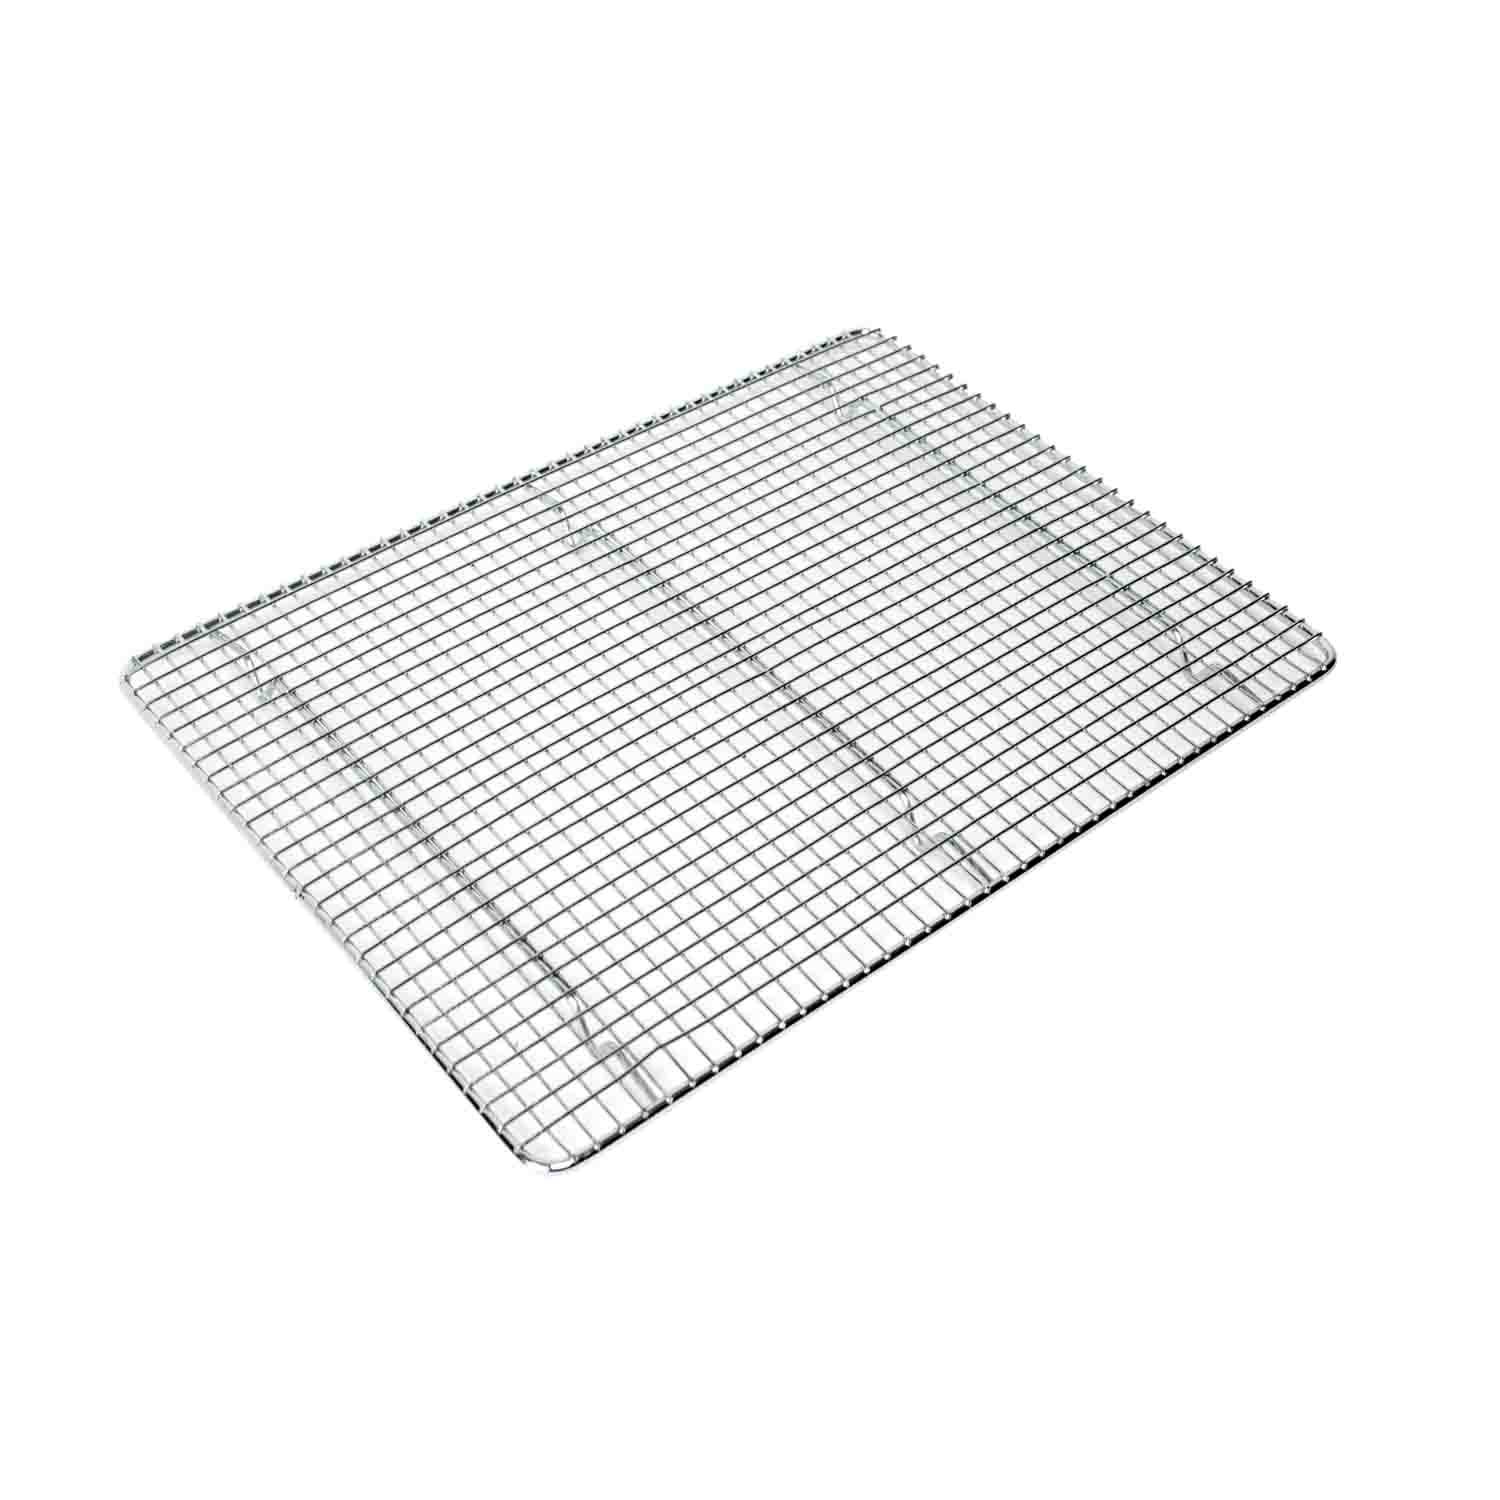 Excellante Icing/Cooling Rack with Built-In Feet, Chrome, 12 by 16.125-Inch SLWG1216